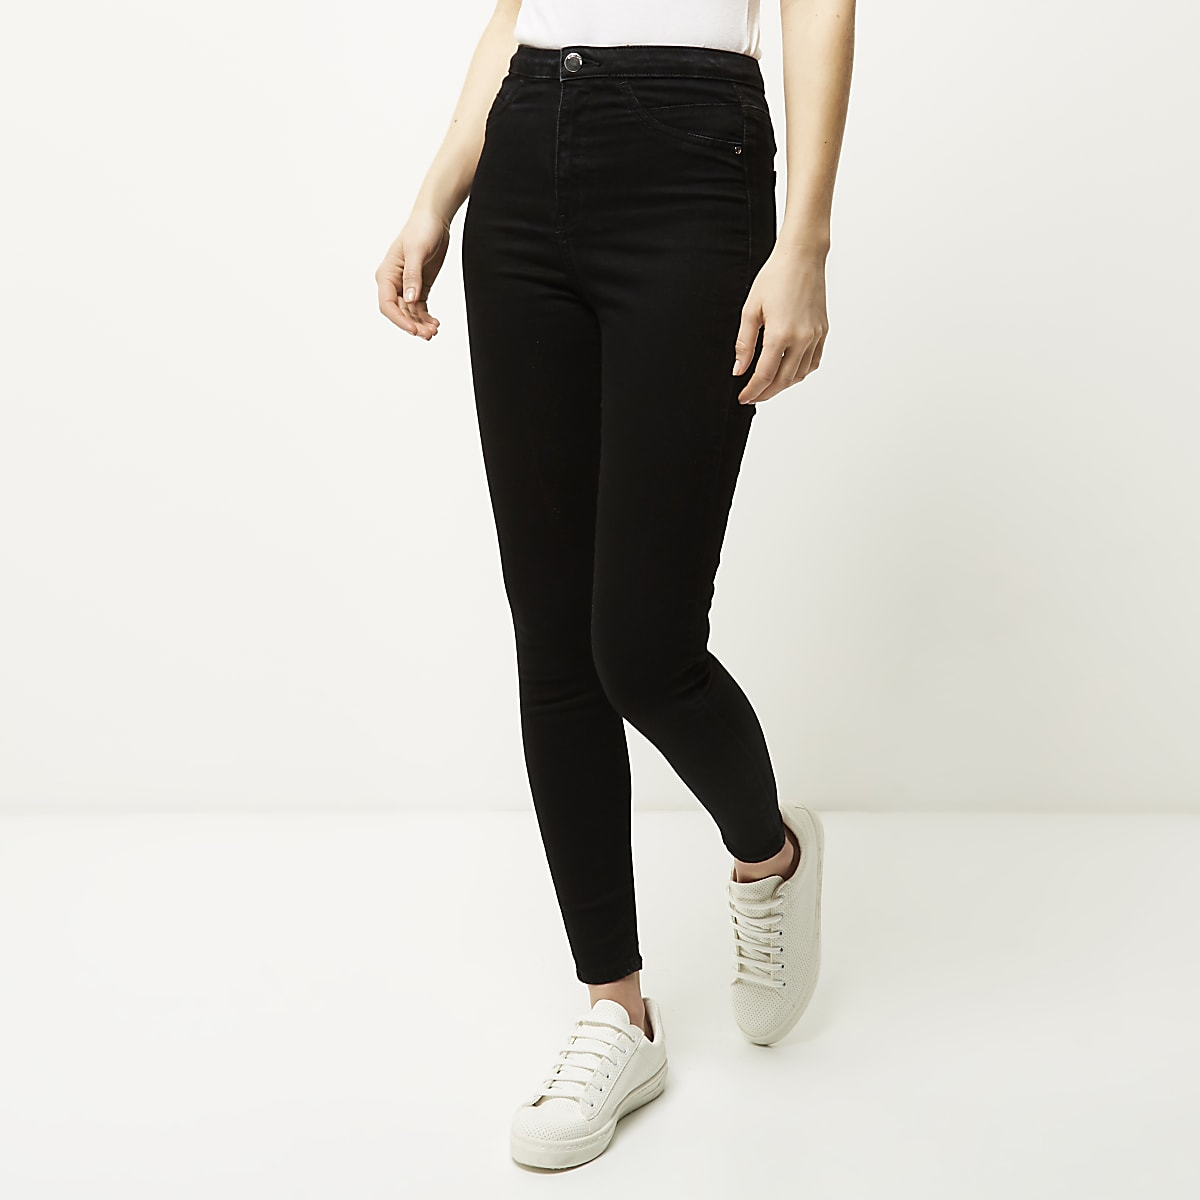 classic styles autumn shoes wholesale dealer Black high waisted going out jeggings